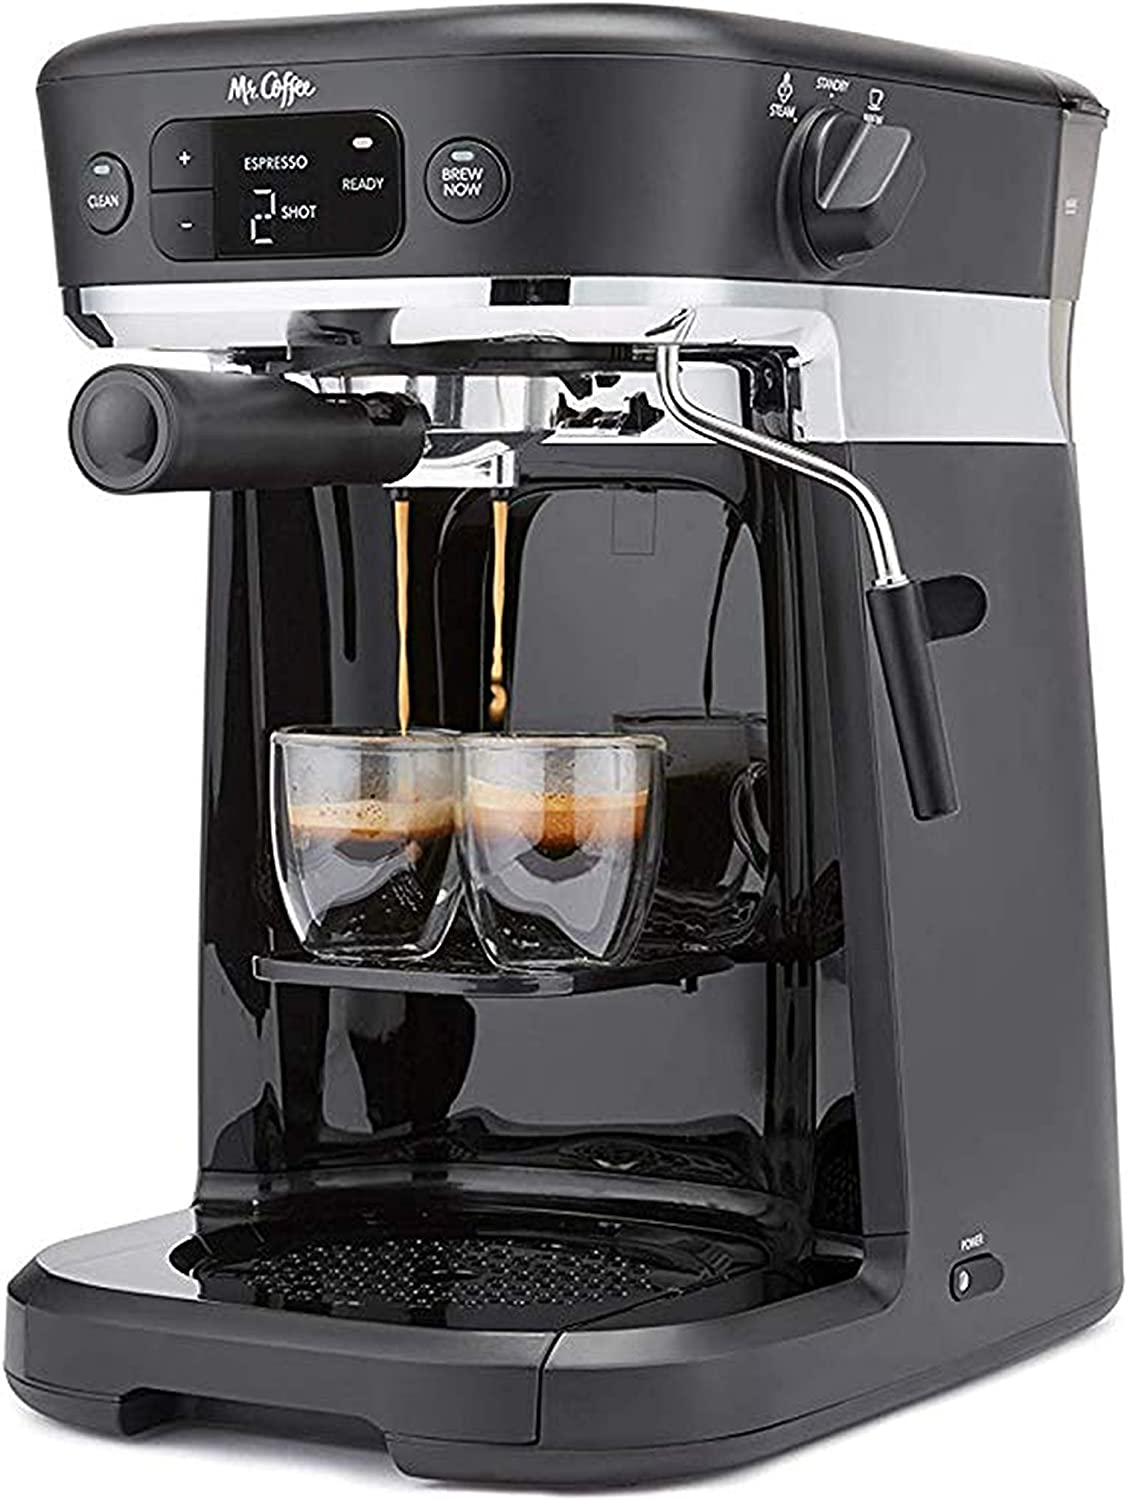 Mr. Coffee BVMC-O-CT All-in- One Occasions Specialty Pods Coffee Maker, 10-Cup Thermal Carafe, and Espresso with Milk Frother and Storage Tray, Black